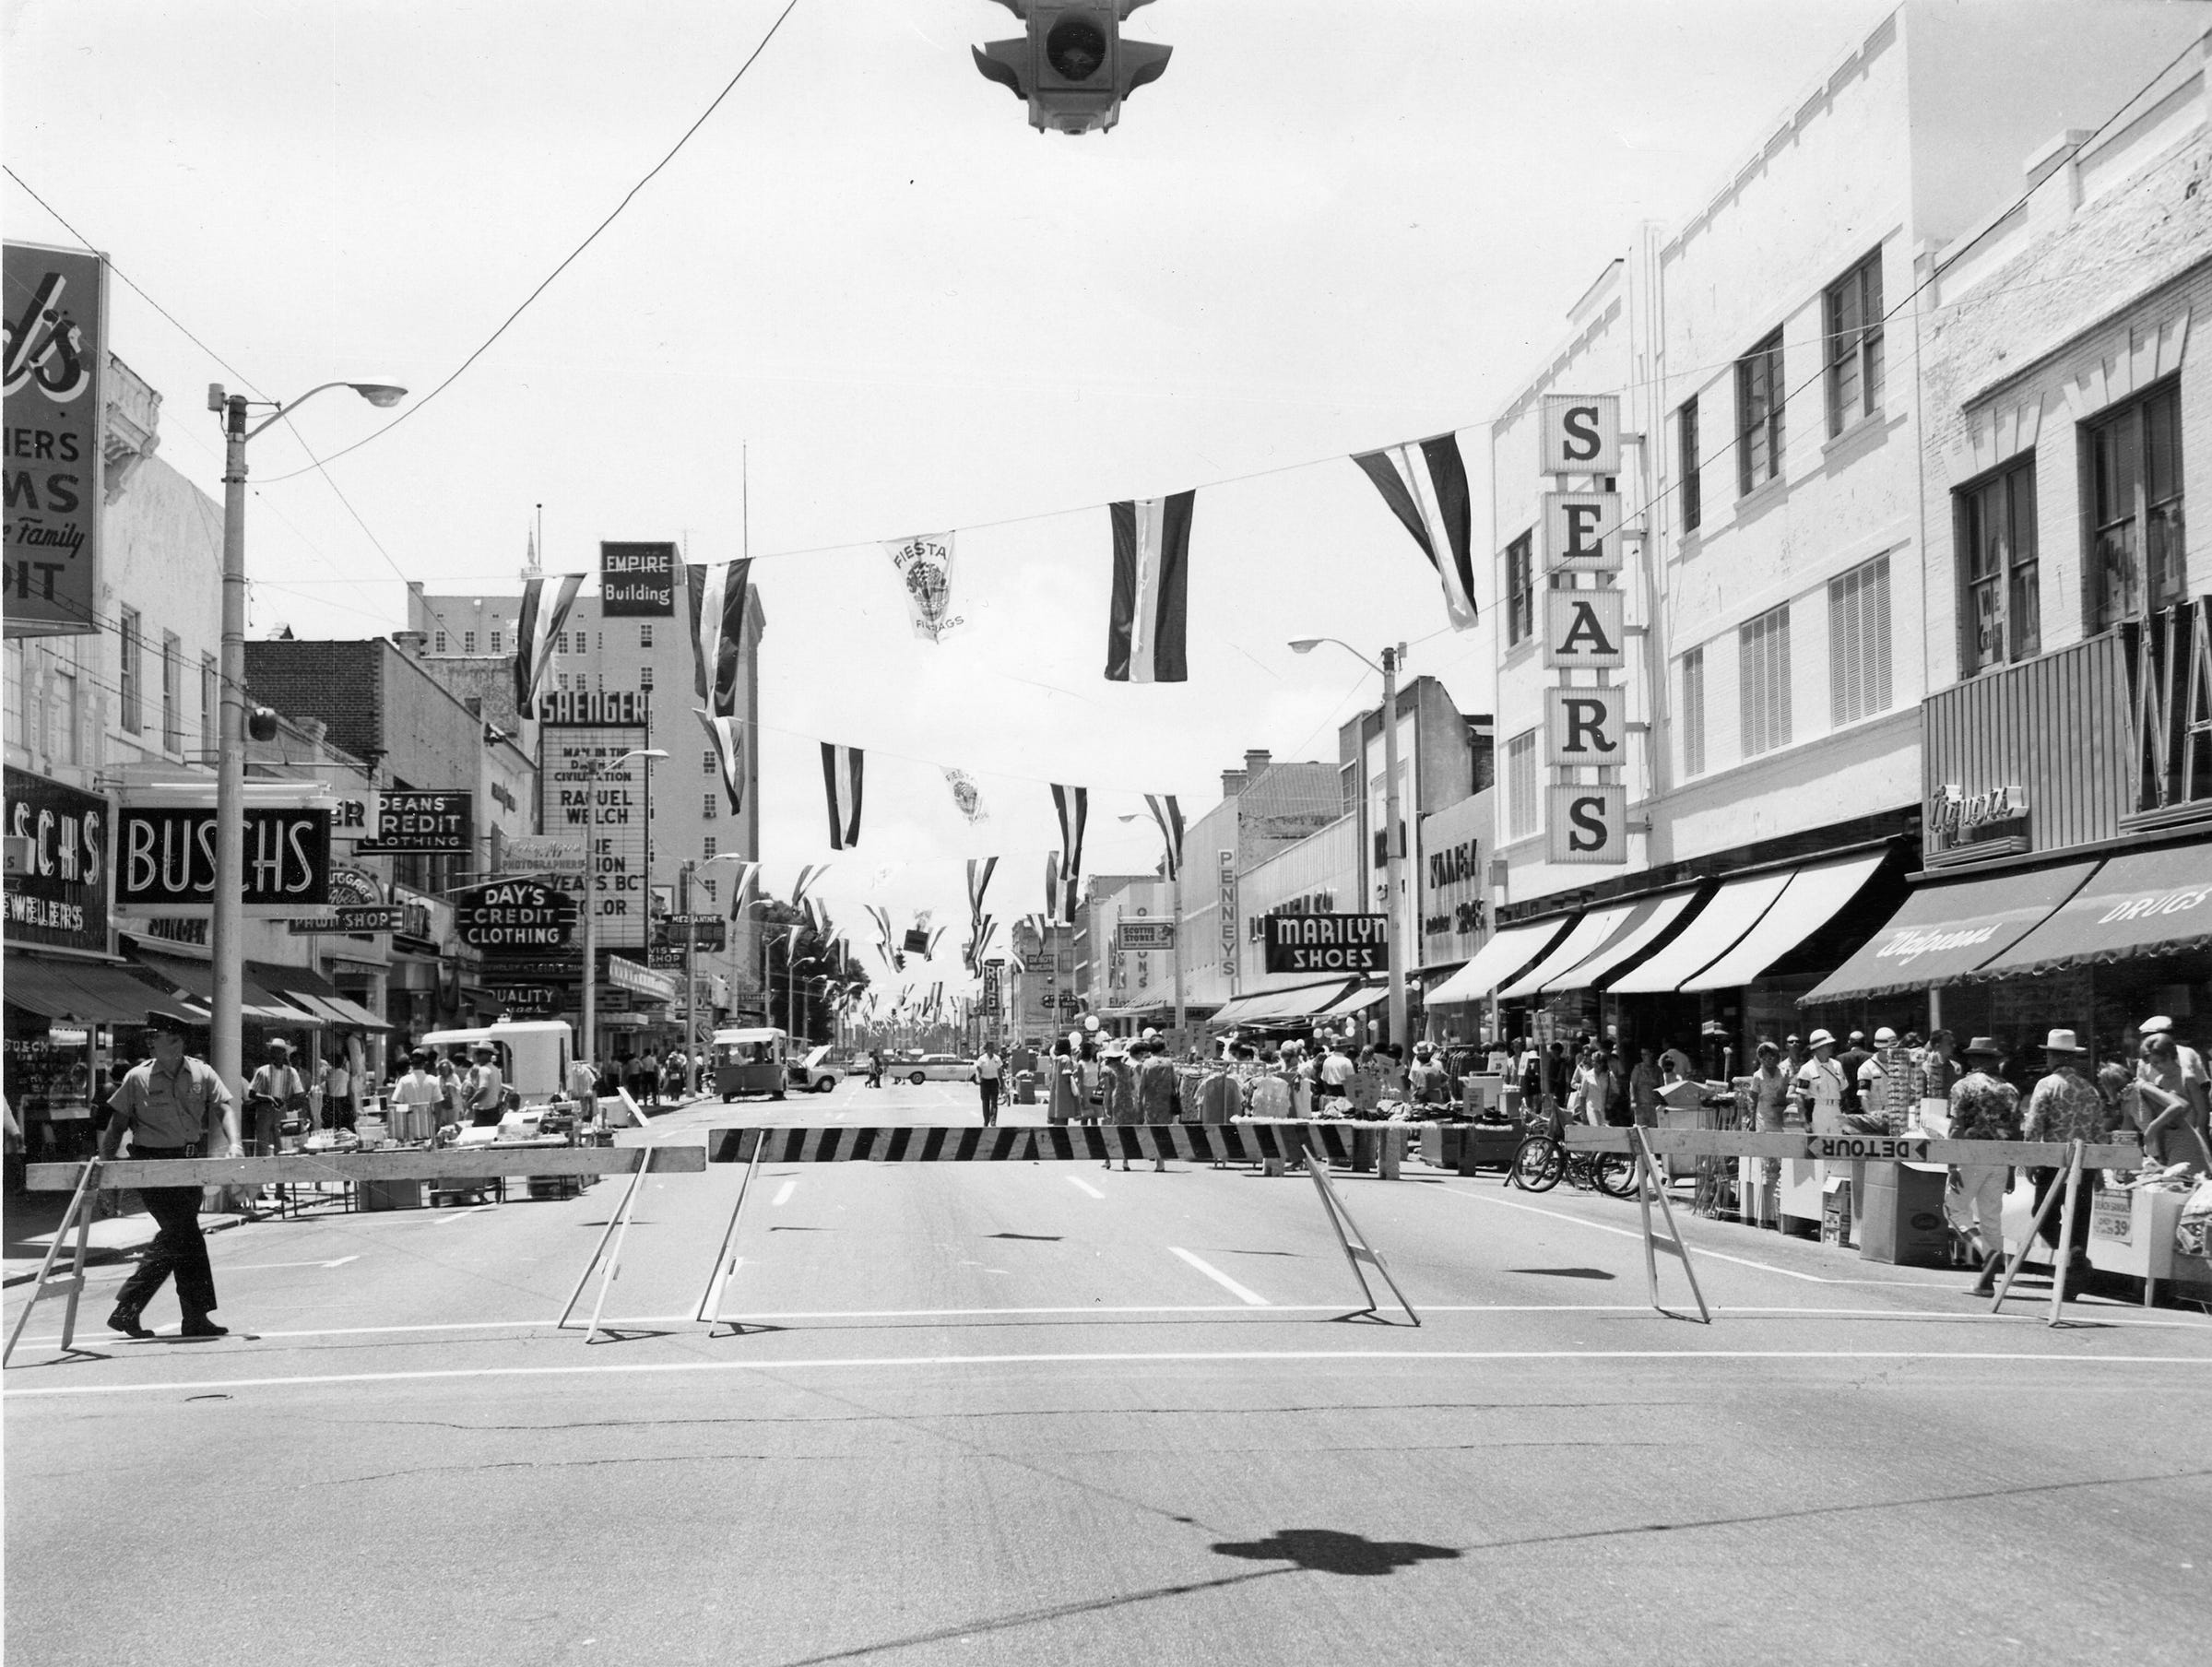 Parade heading south on Palafox Street in 1960s.